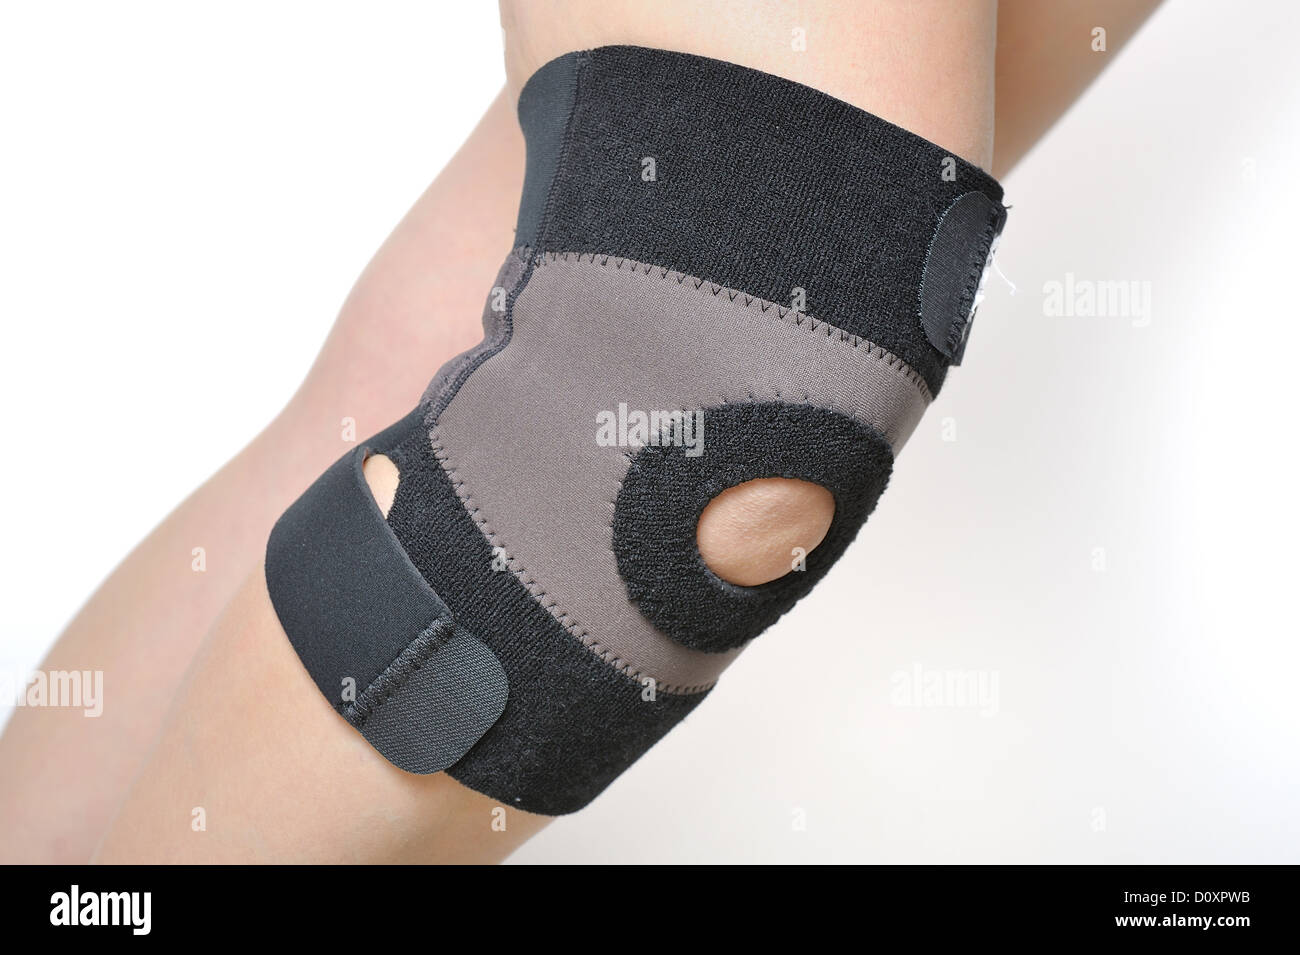 knee support - Stock Image